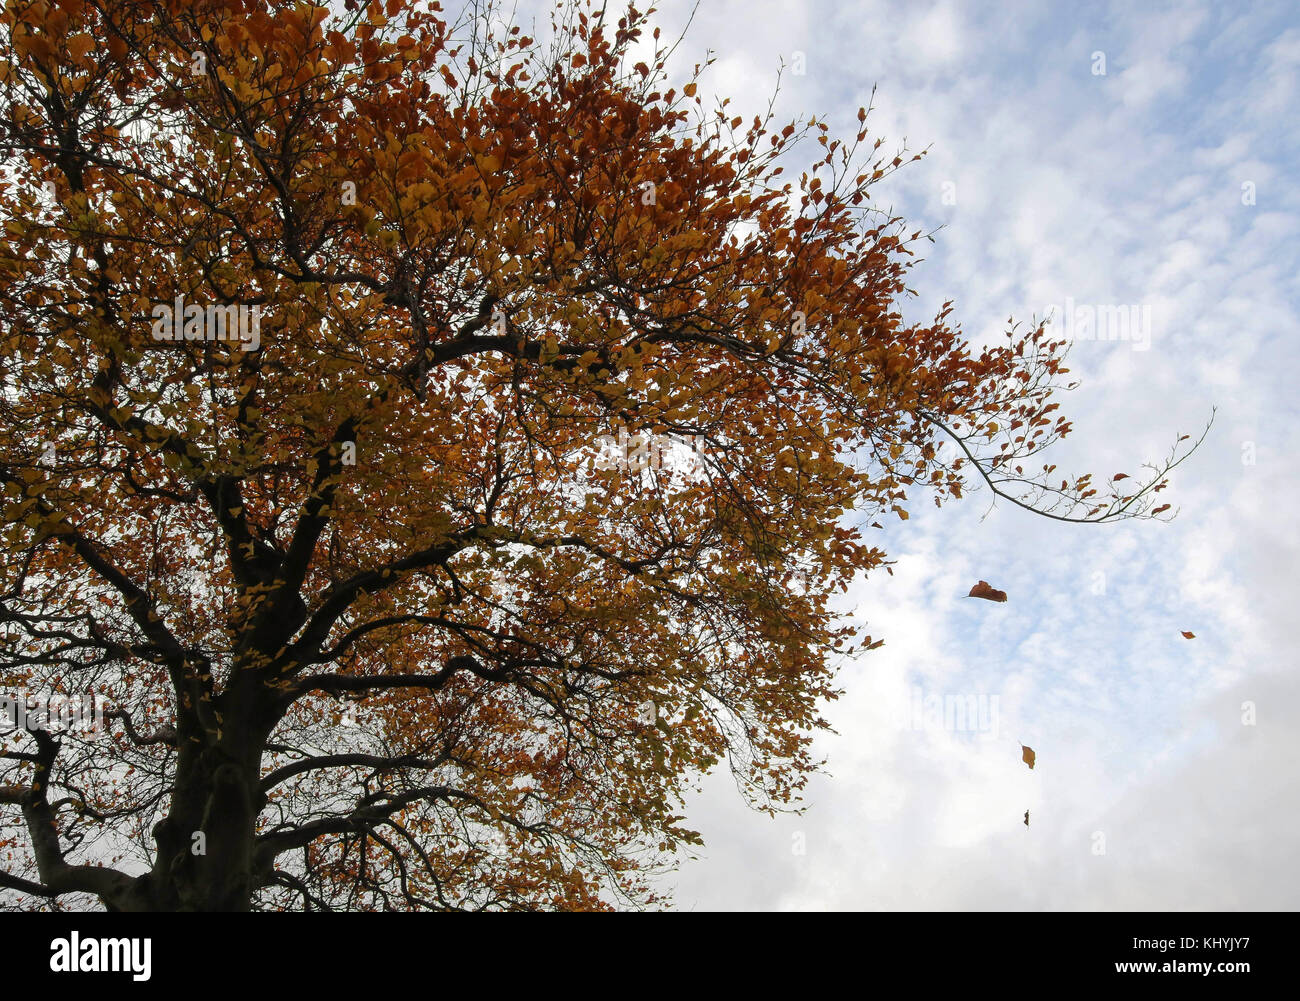 County Armagh Northern Ireland UK. 20 November 2017. UK weather - an increasing breeze has brought variabe cloud - Stock Image